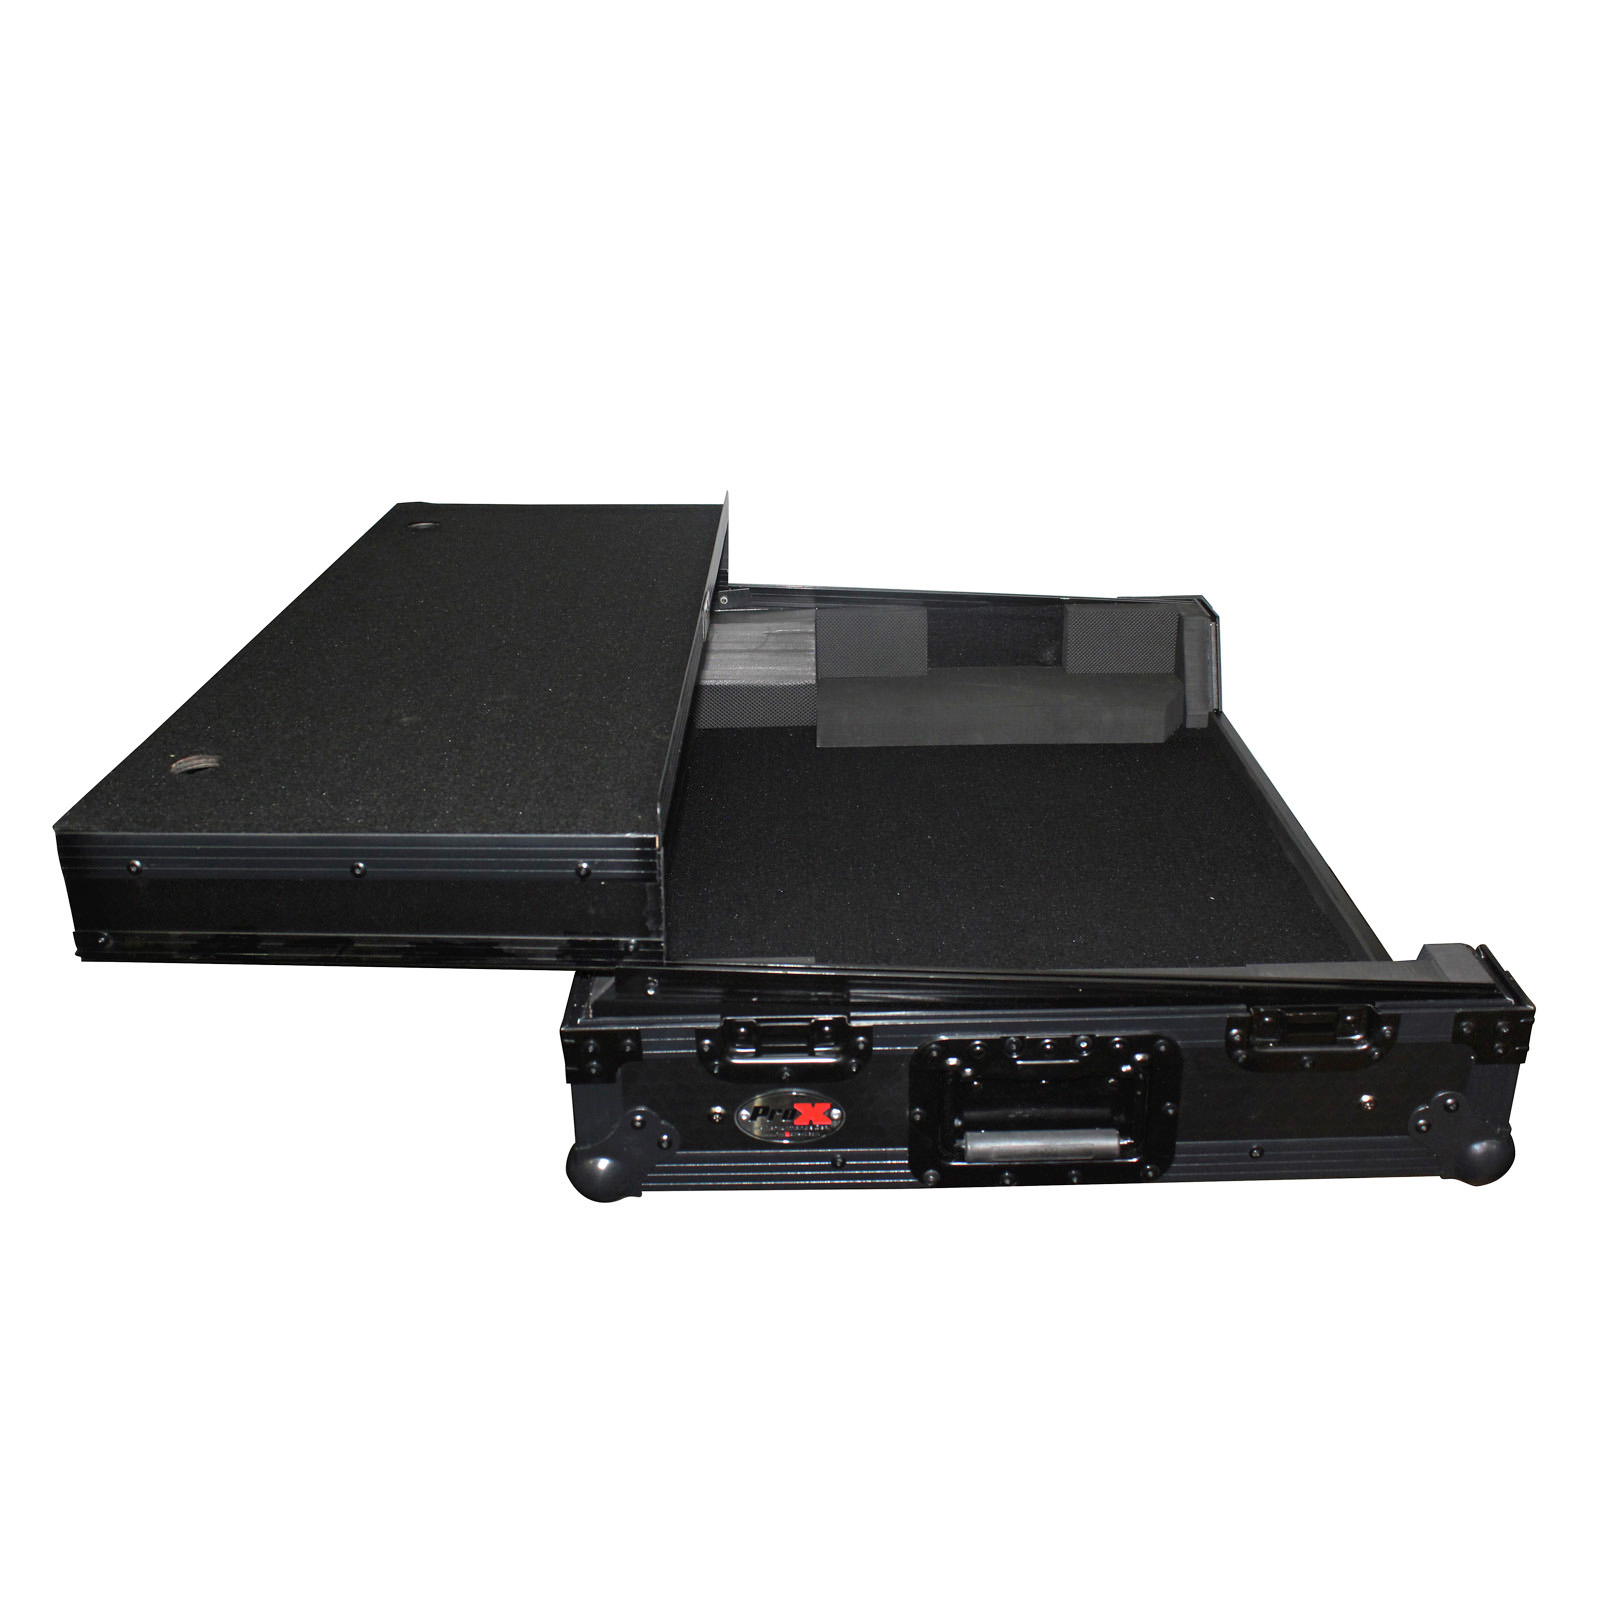 prox-xs-ns7iiiwltbl-case-for-ns7ii-or-ns7iii.jpg